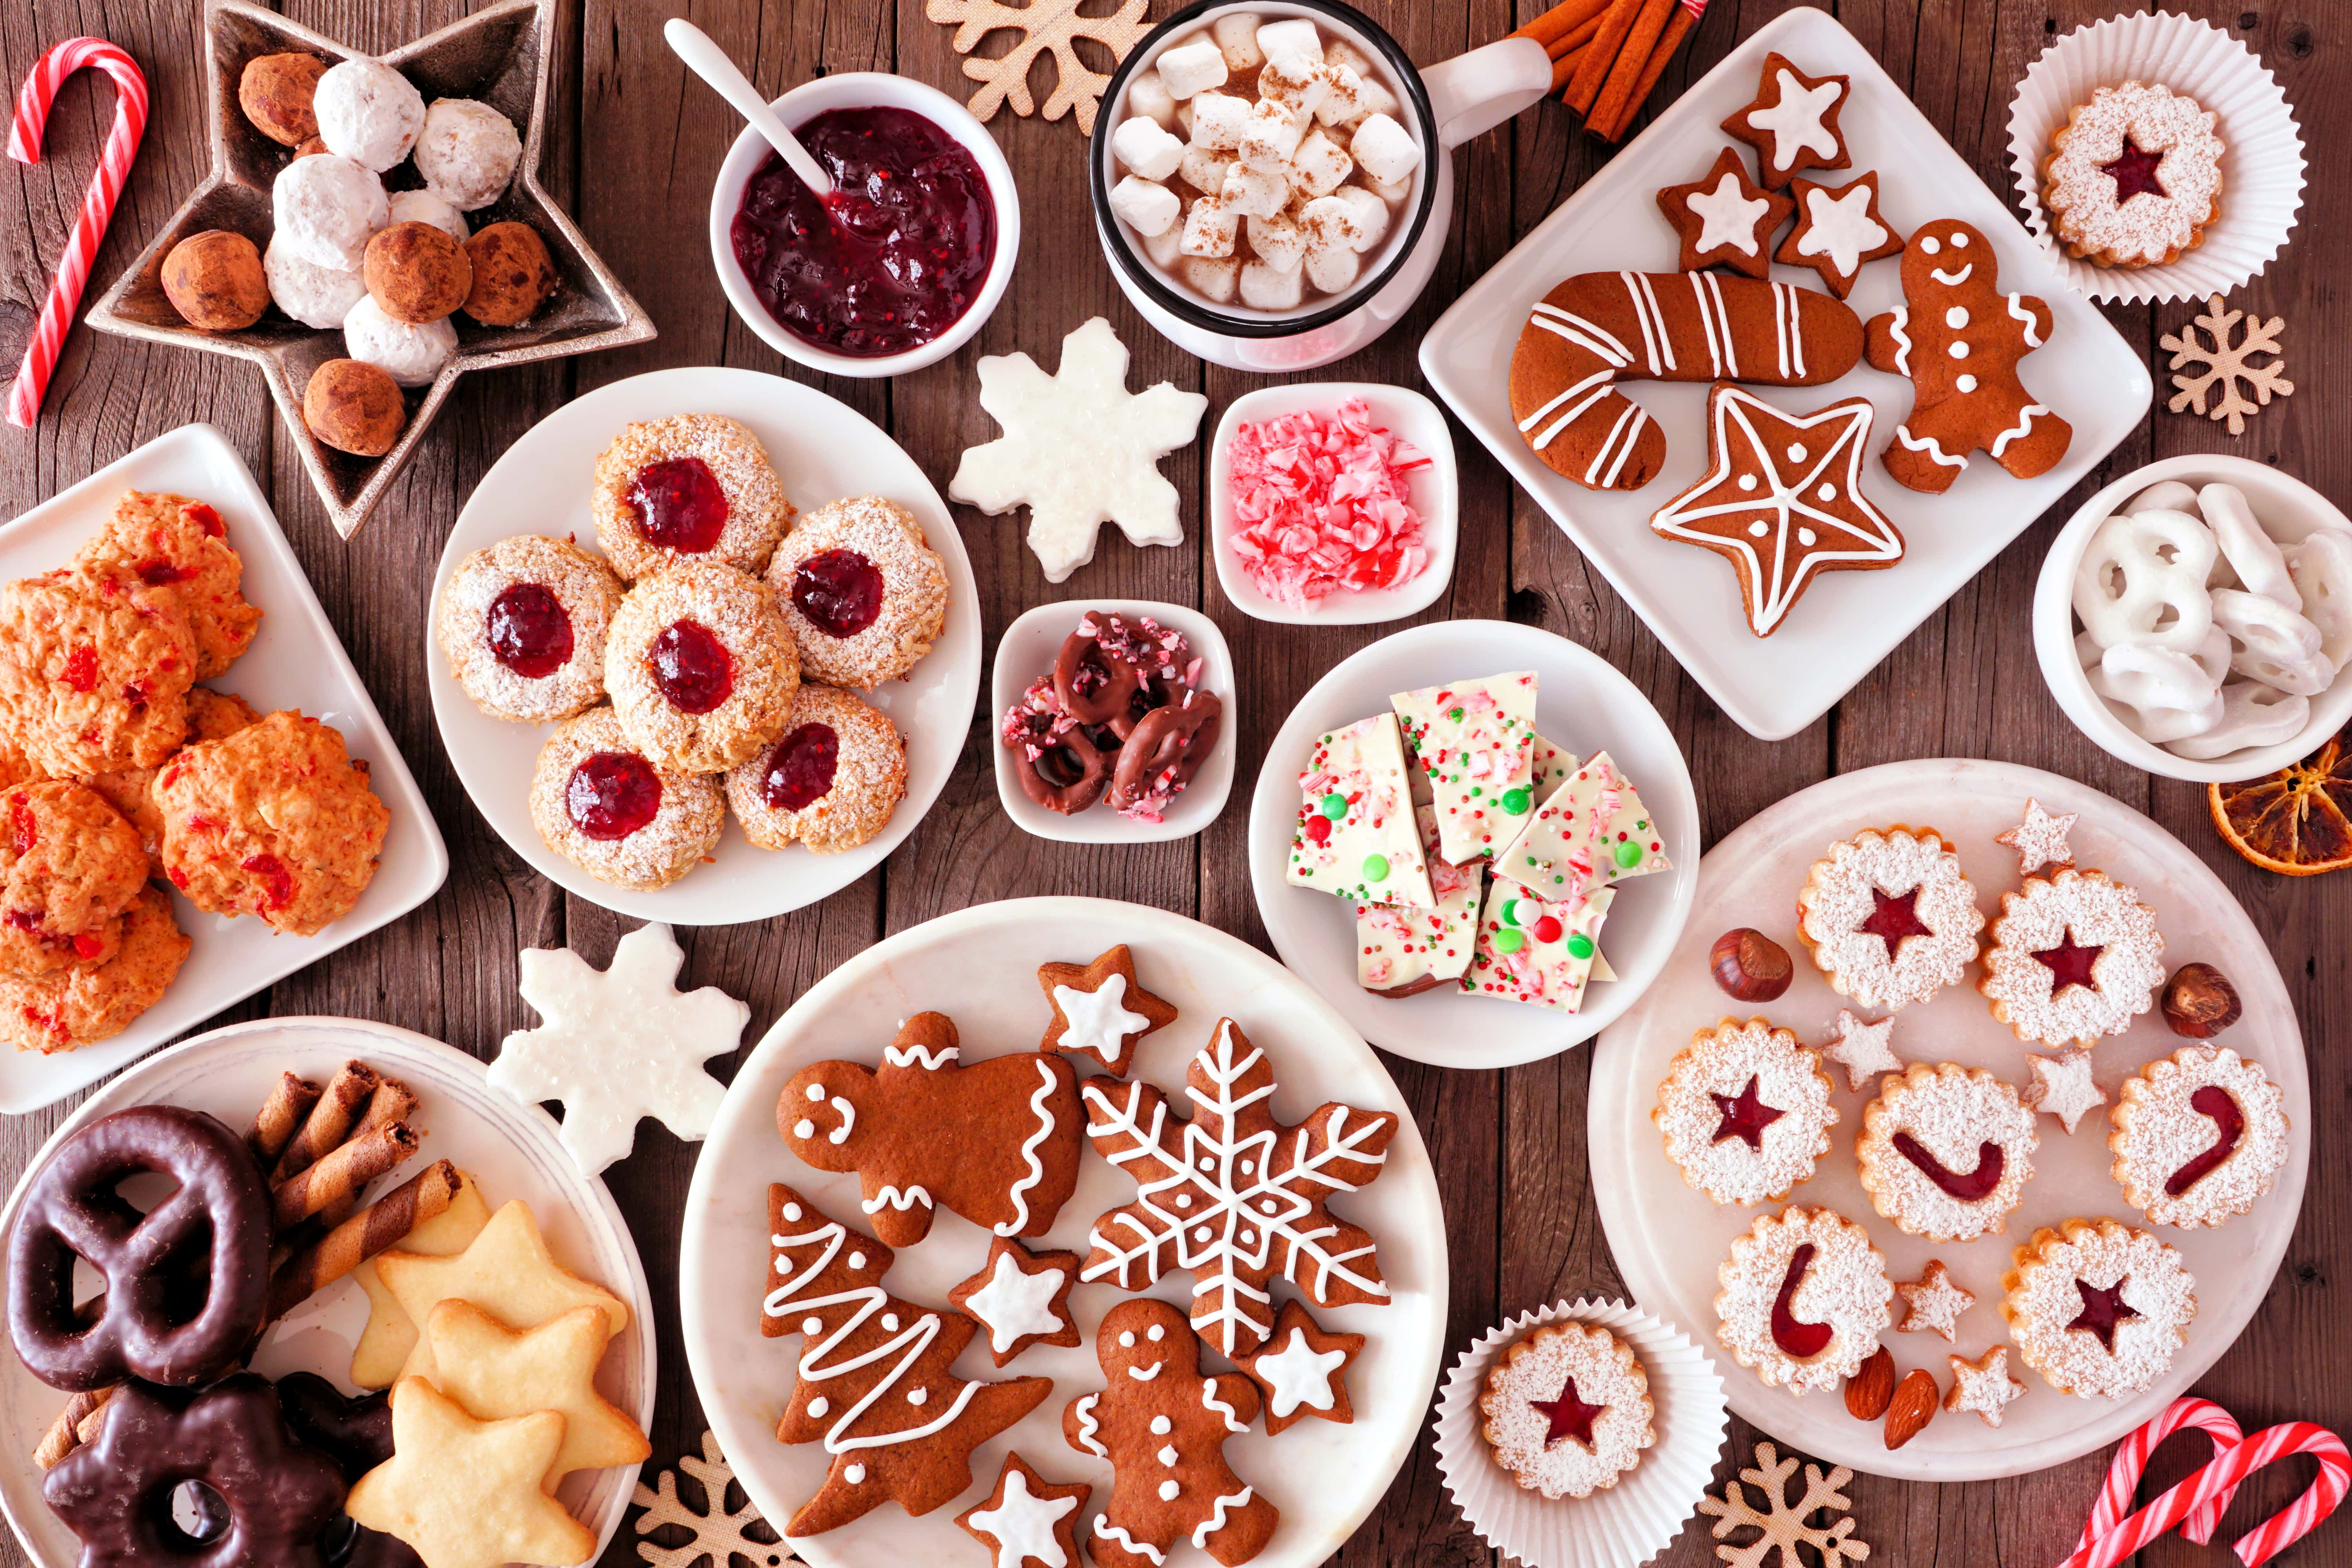 Christmas-baking-table-scene-with-assorted-sweets-and-cookies,-top-view-over-a-rustic-wood-background